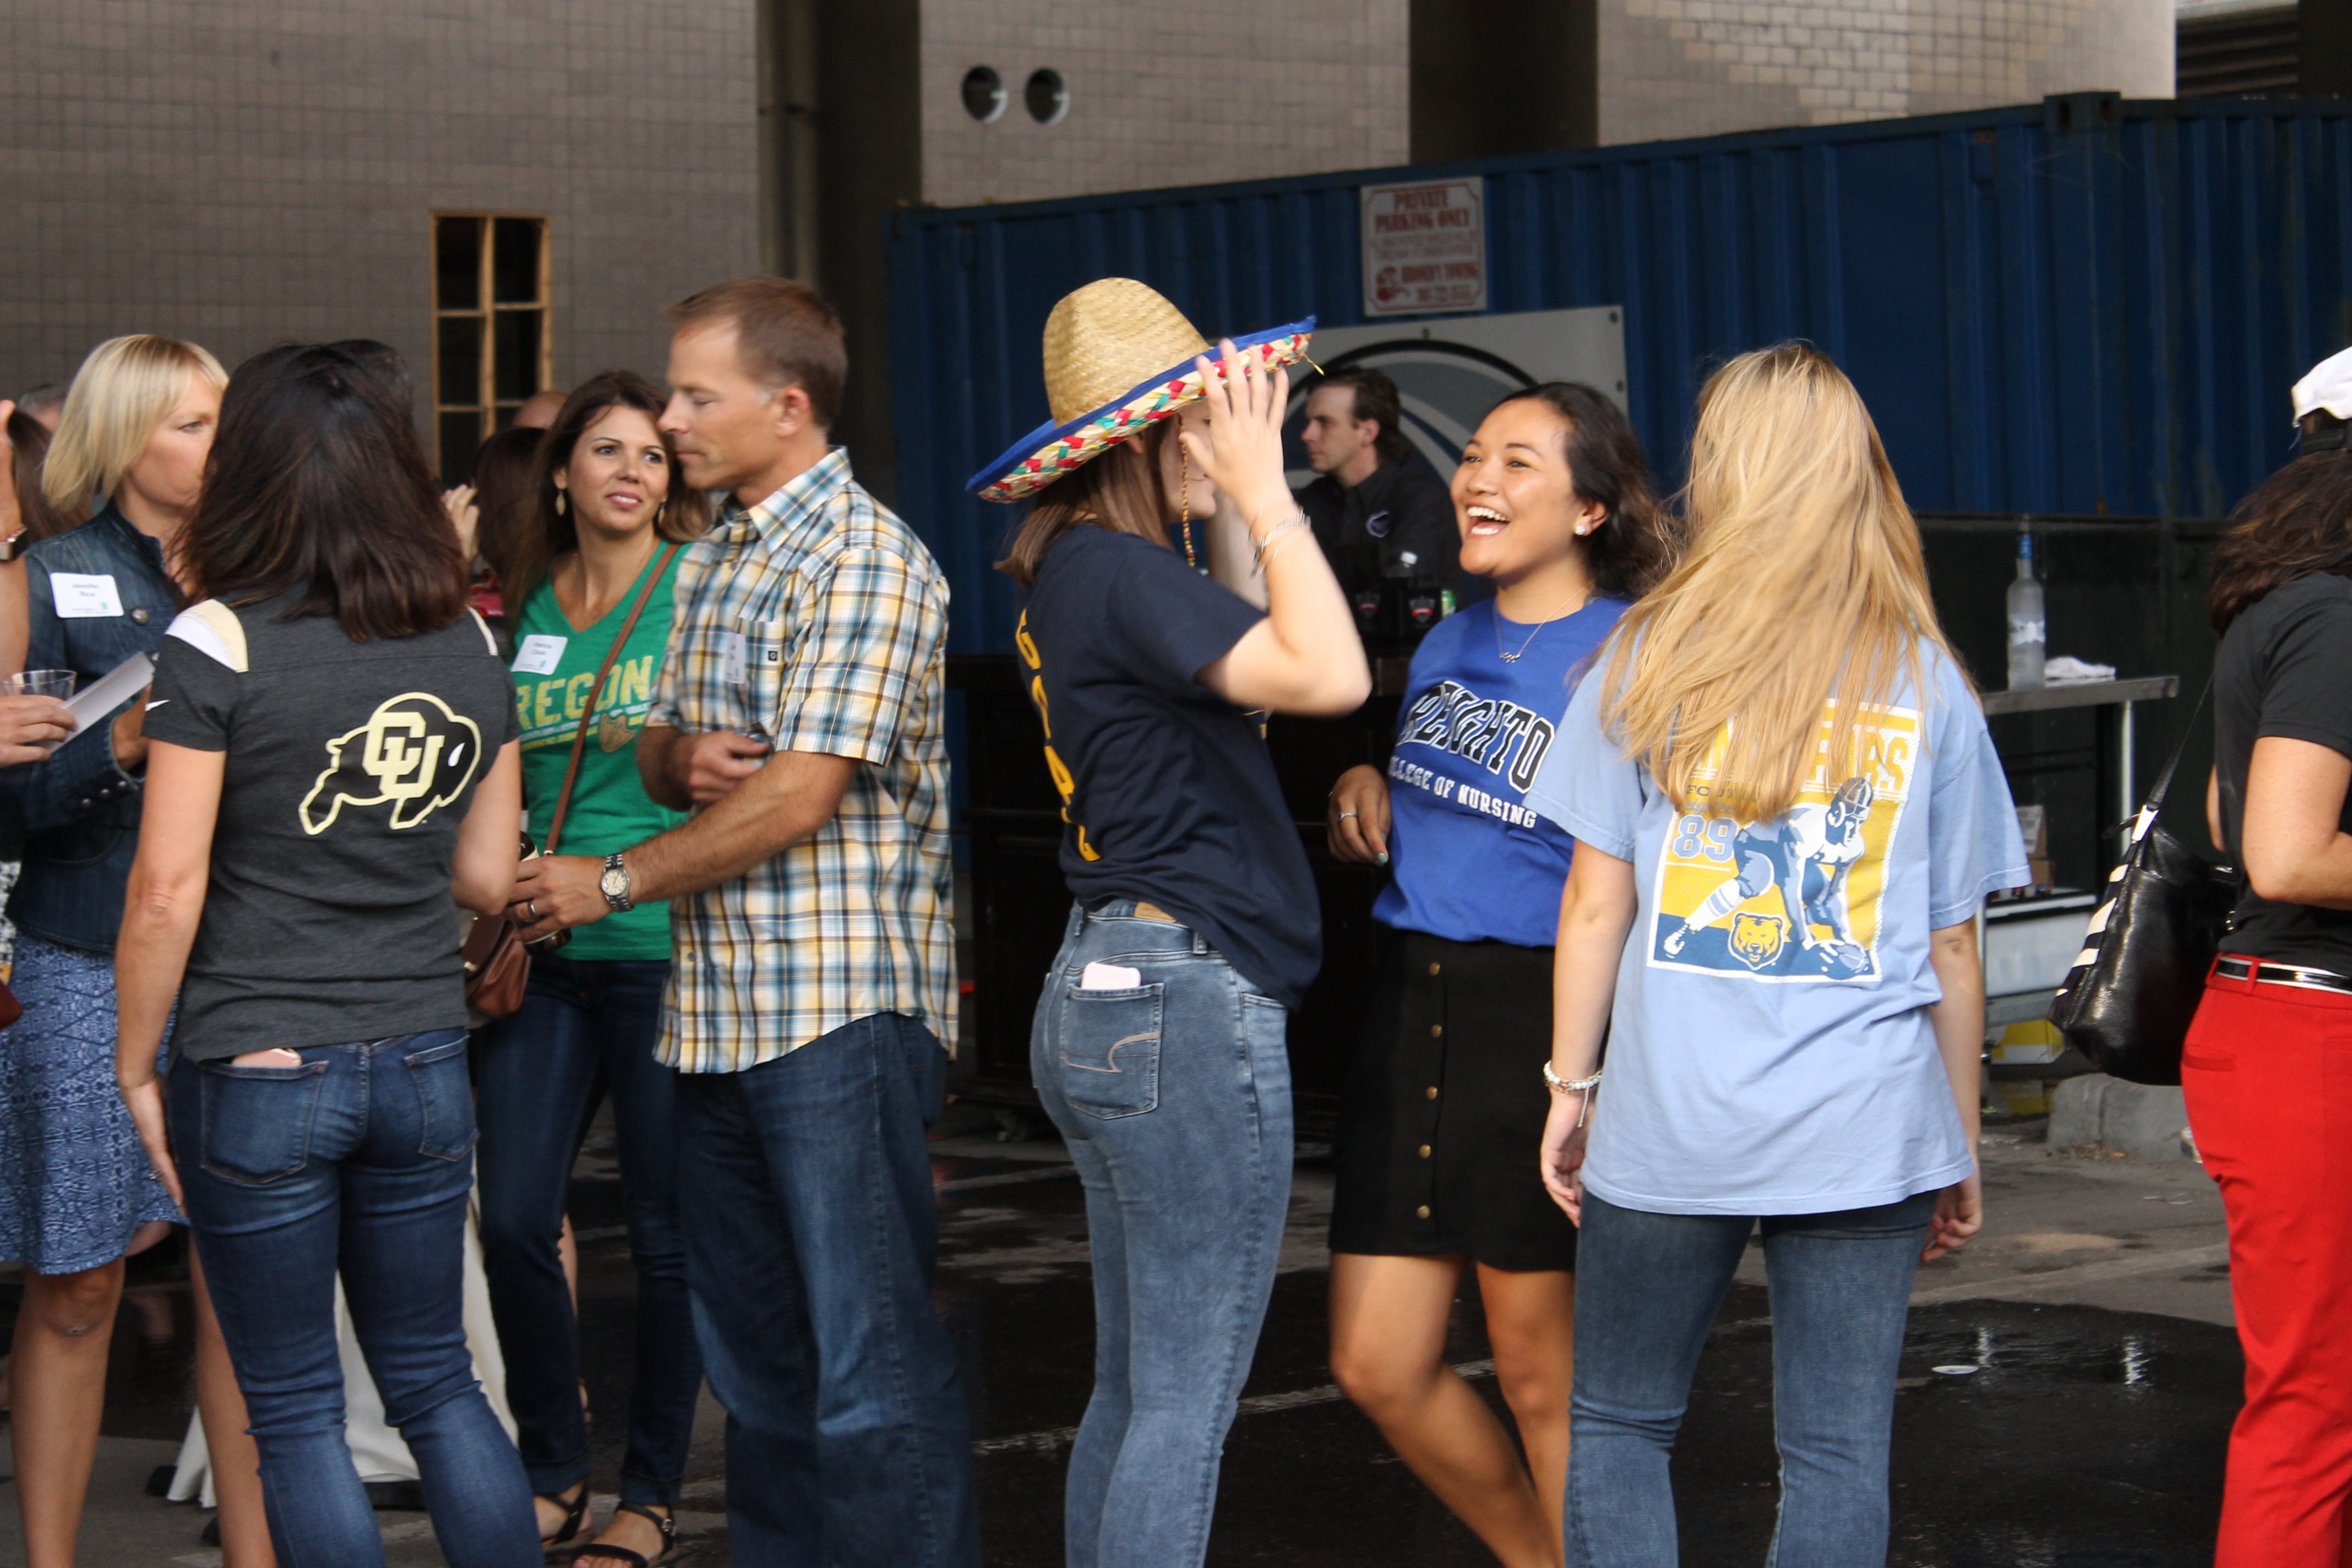 Group of people stand talking to each other in a parking lot; each wear college tshirts and jeans